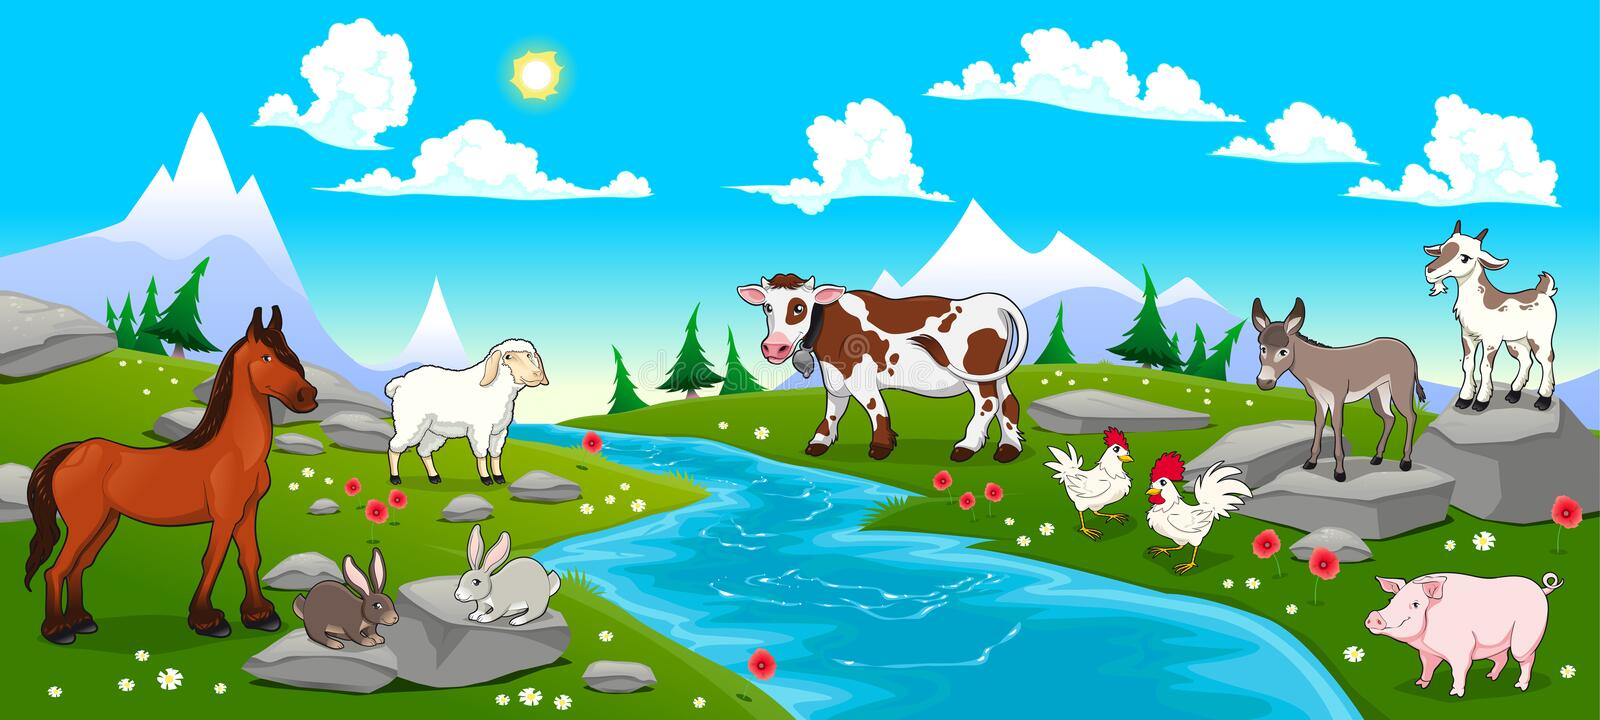 Mountain landscape with river and animals stock illustration